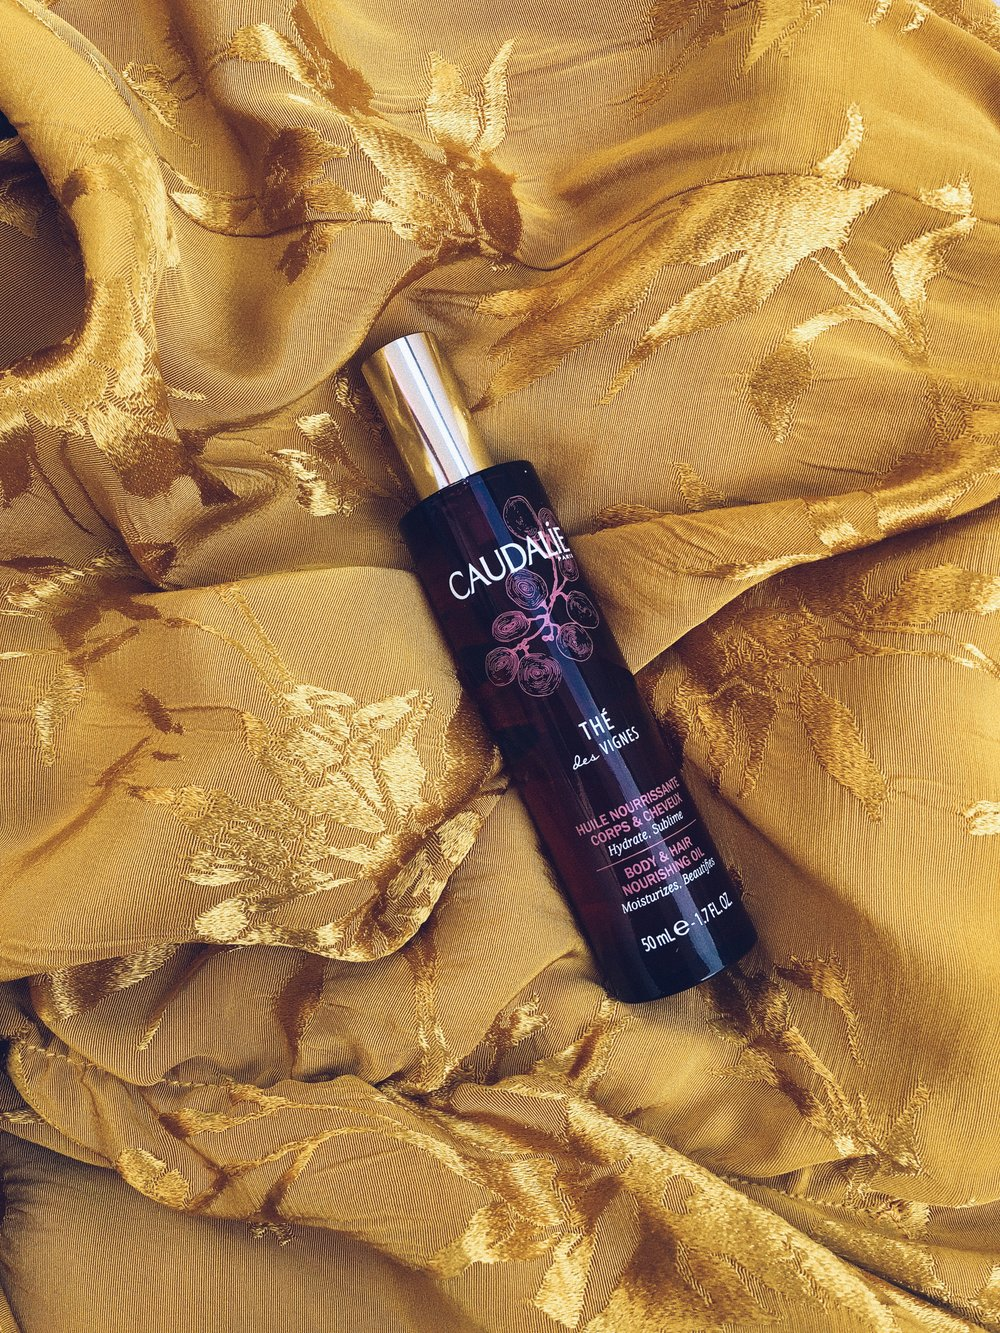 AS YOU KNOW, WE ARE BIG FANS OF CAUDALÍE. RECENTLY HAVE FALLEN FOR    CAUDALÍE'S THÉ DES VIGNES   LINE. WE NOT ONLY LOVE THE SUBTLE BUT SENSUAL SCENT OF THIS OIL FOR BODY & HAIR, WE ALSO LOVE THAT IT'S MOISTURIZING AND NOURISHING. IT CONTAINS ARGAN OIL, KARITÉ BUTTER AND SESAME OIL AS WELL AS GRAPE SEED OIL MEANING YES, IT LEAVES YOUR SKIN BABY SOFT. -T